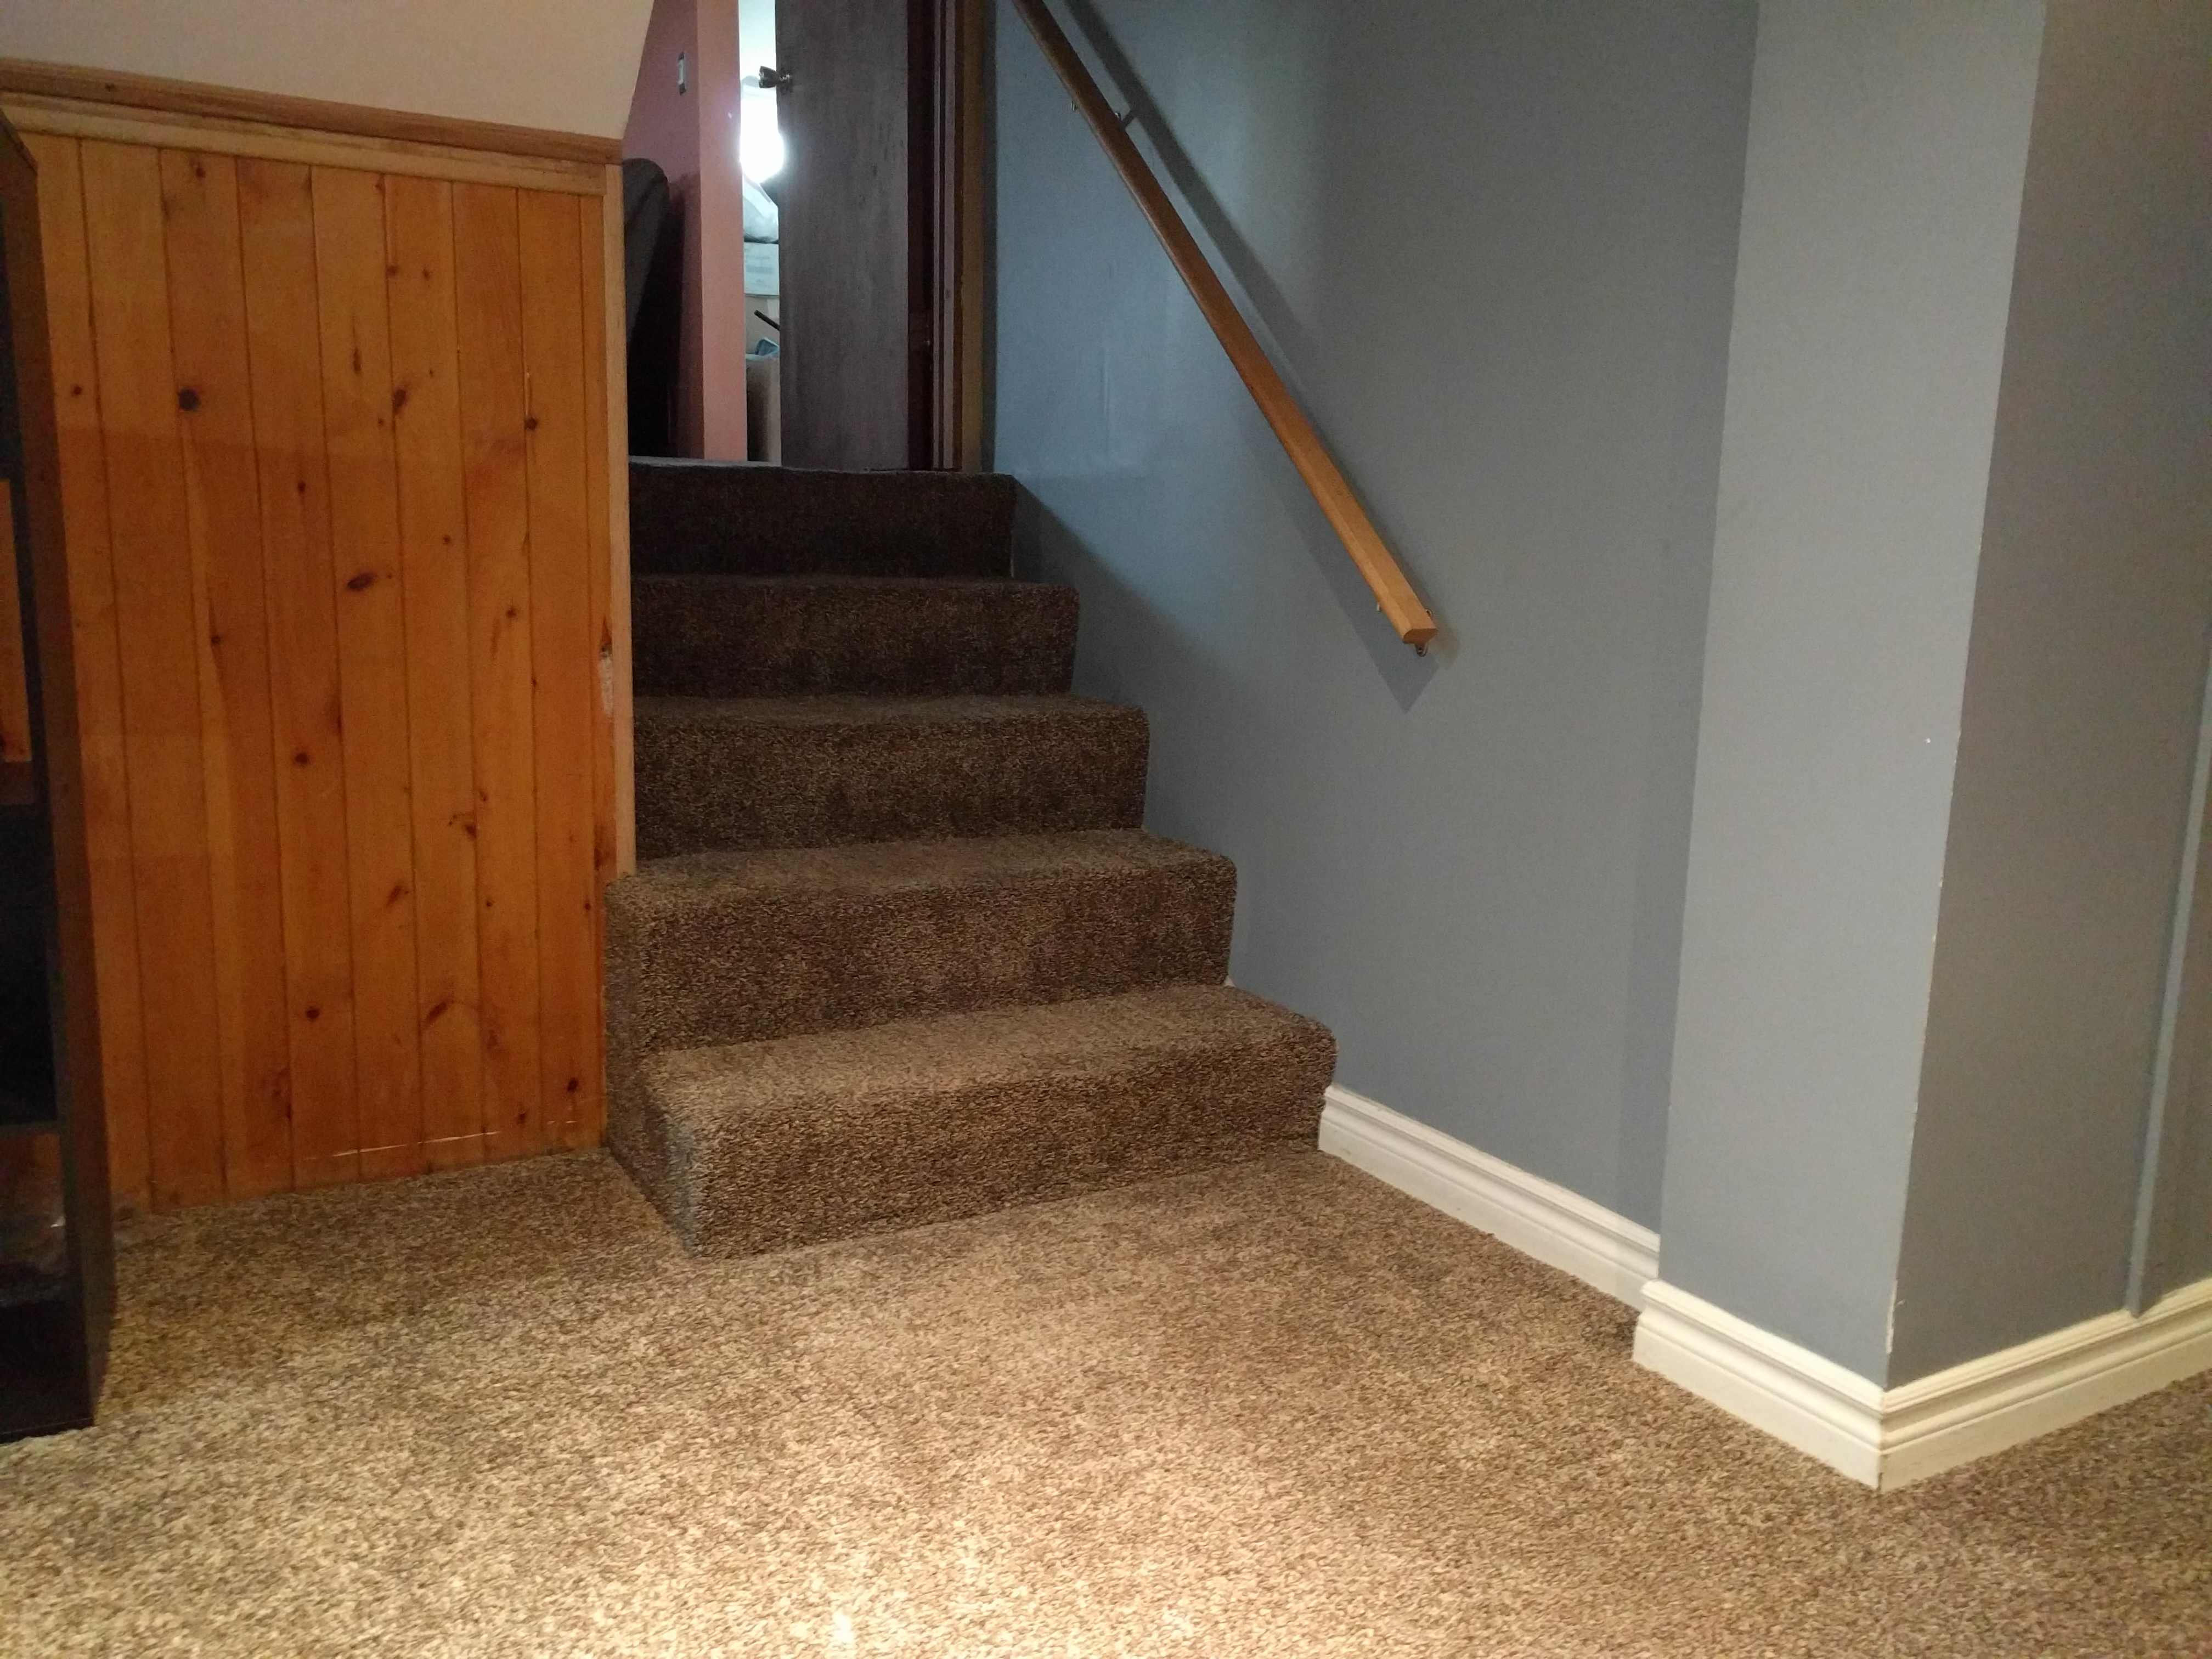 01-emailer-stairs